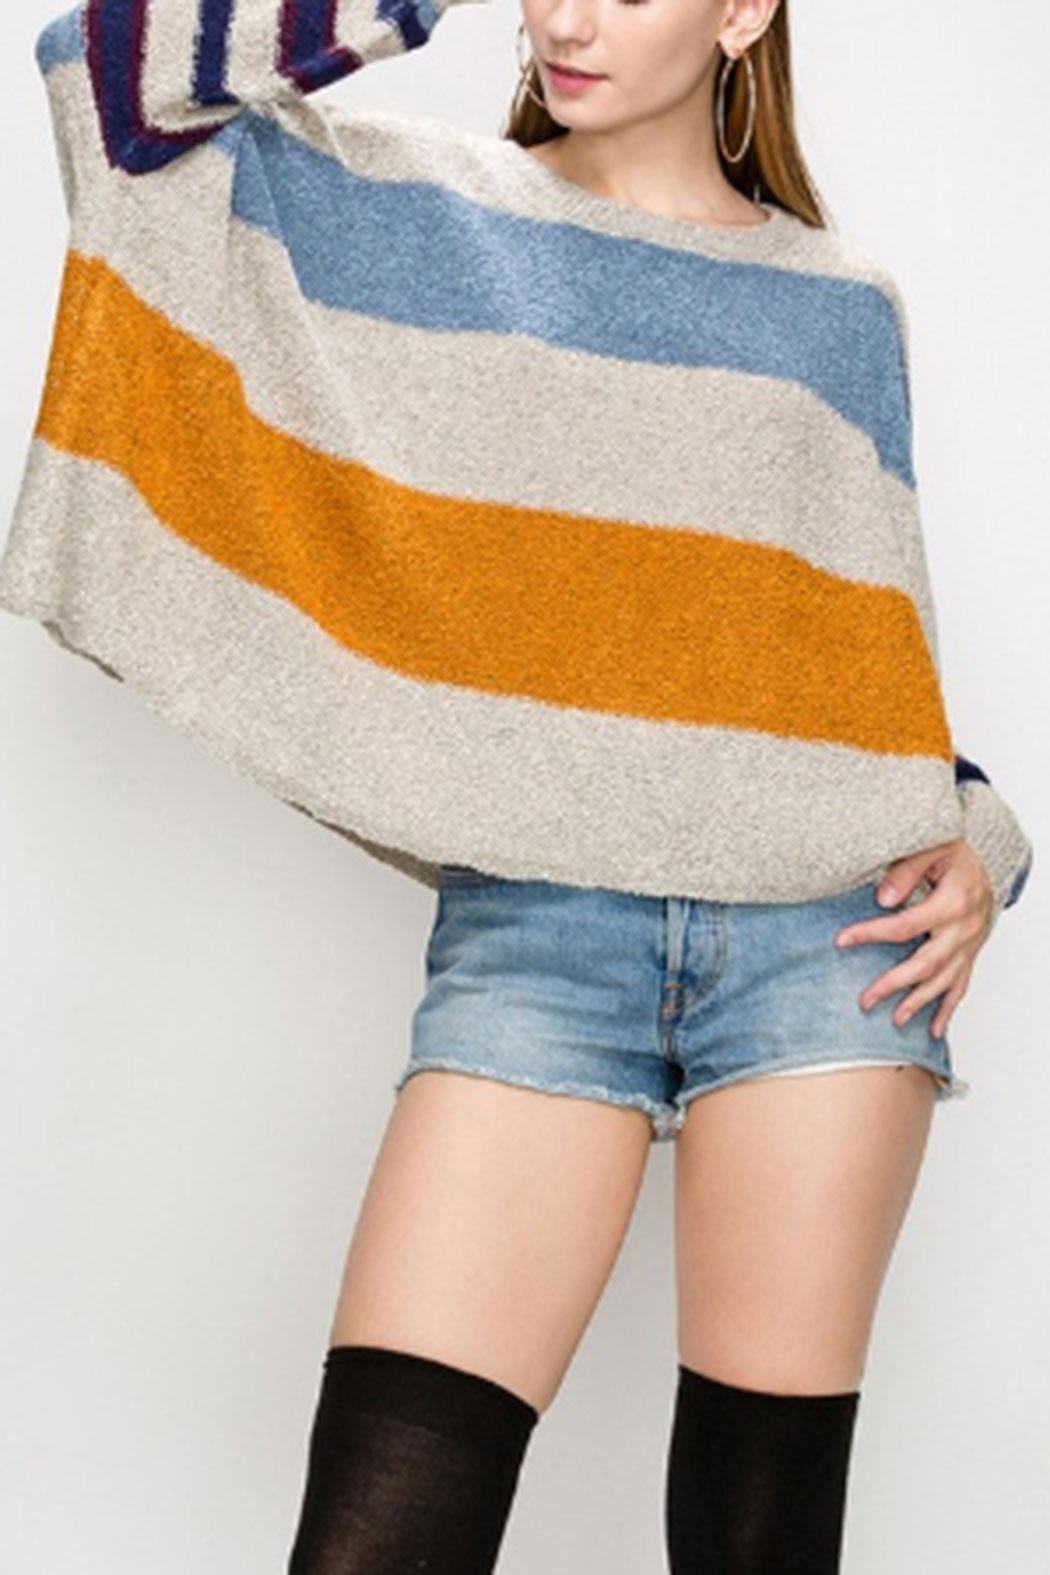 HYFVE Multi-Color Striped Sweater - Side Cropped Image